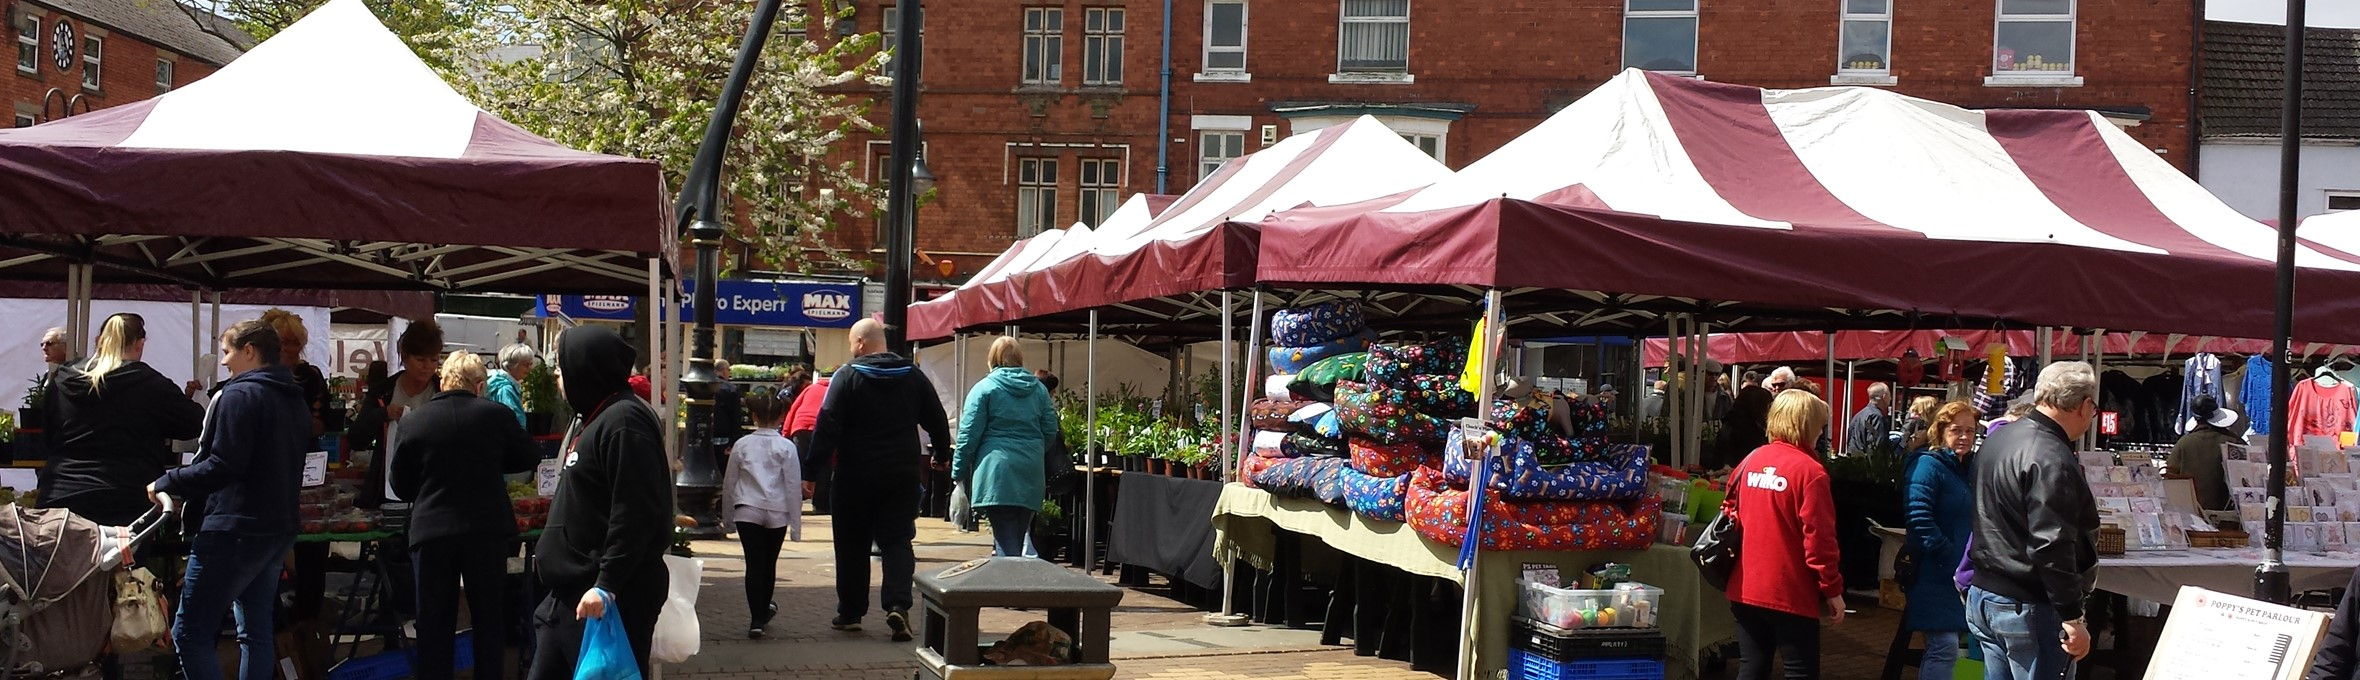 Sutton Market place with stalls set out and people shopping